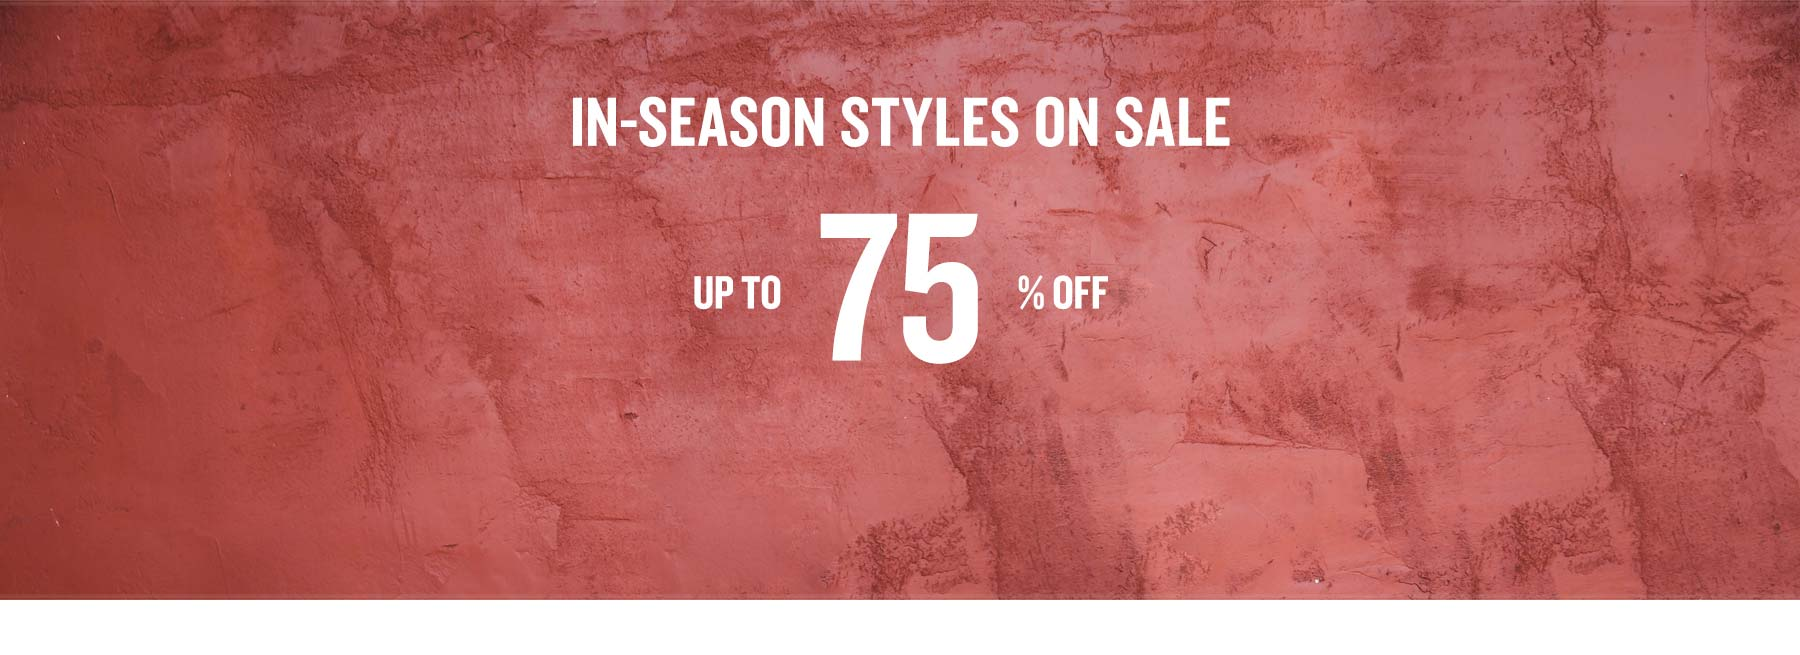 In-Season Styles on Sale up to 75% off.